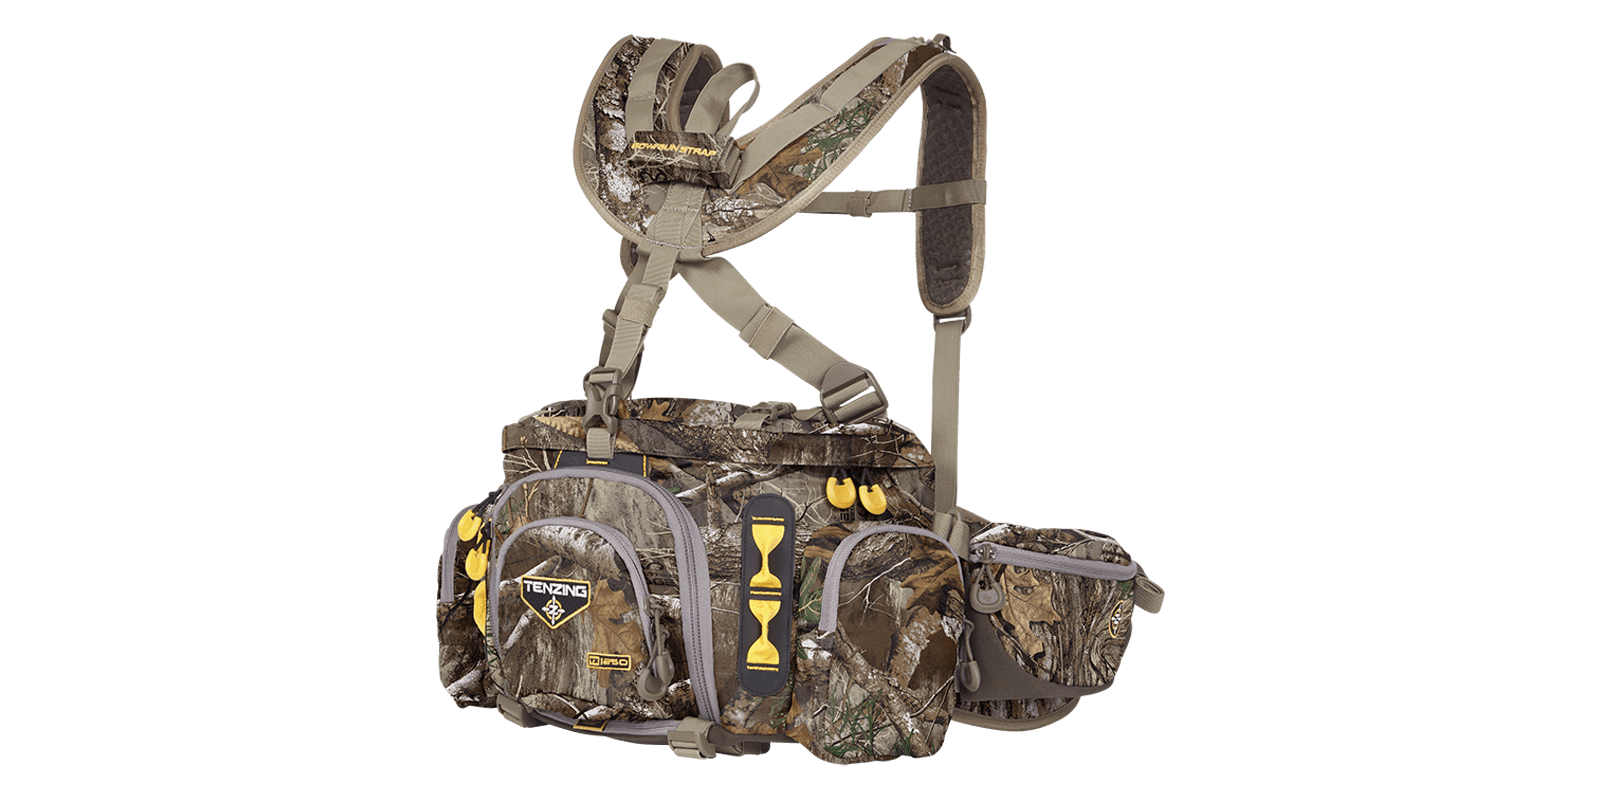 Tenzing TZ 1250 Lumbar Pack Realtree Edge available for sale at Kiigns Hunting.